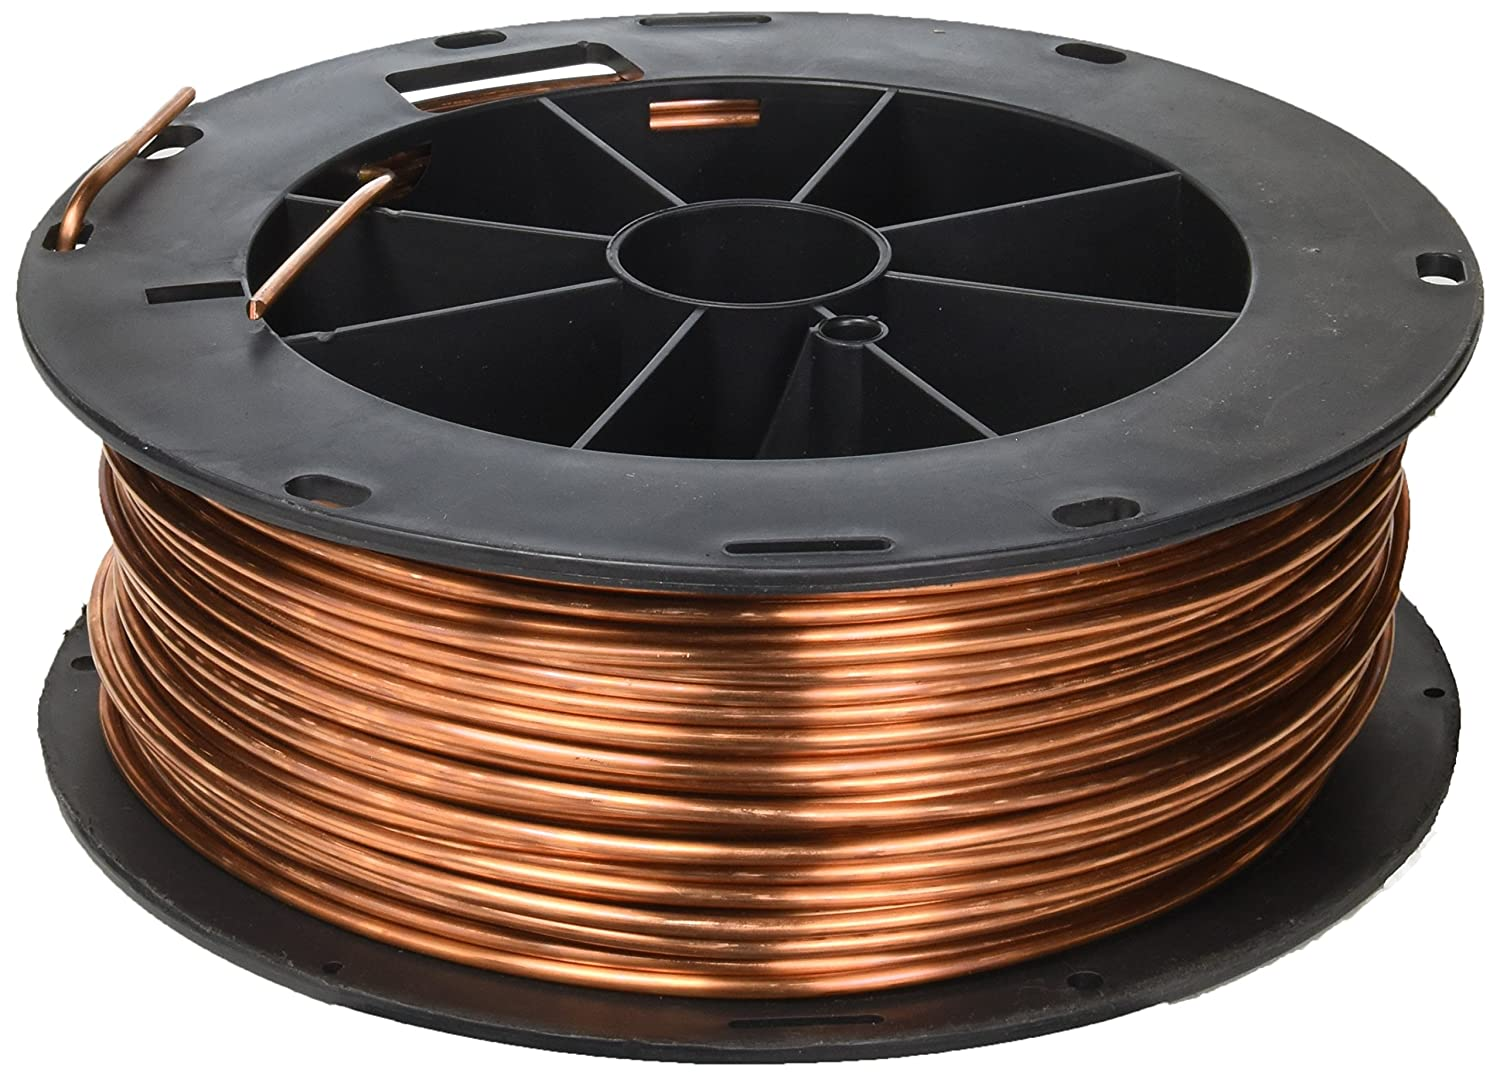 Southwire 10632802 500\' 8 Solid Bare Copper Wire - Electrical Cables ...